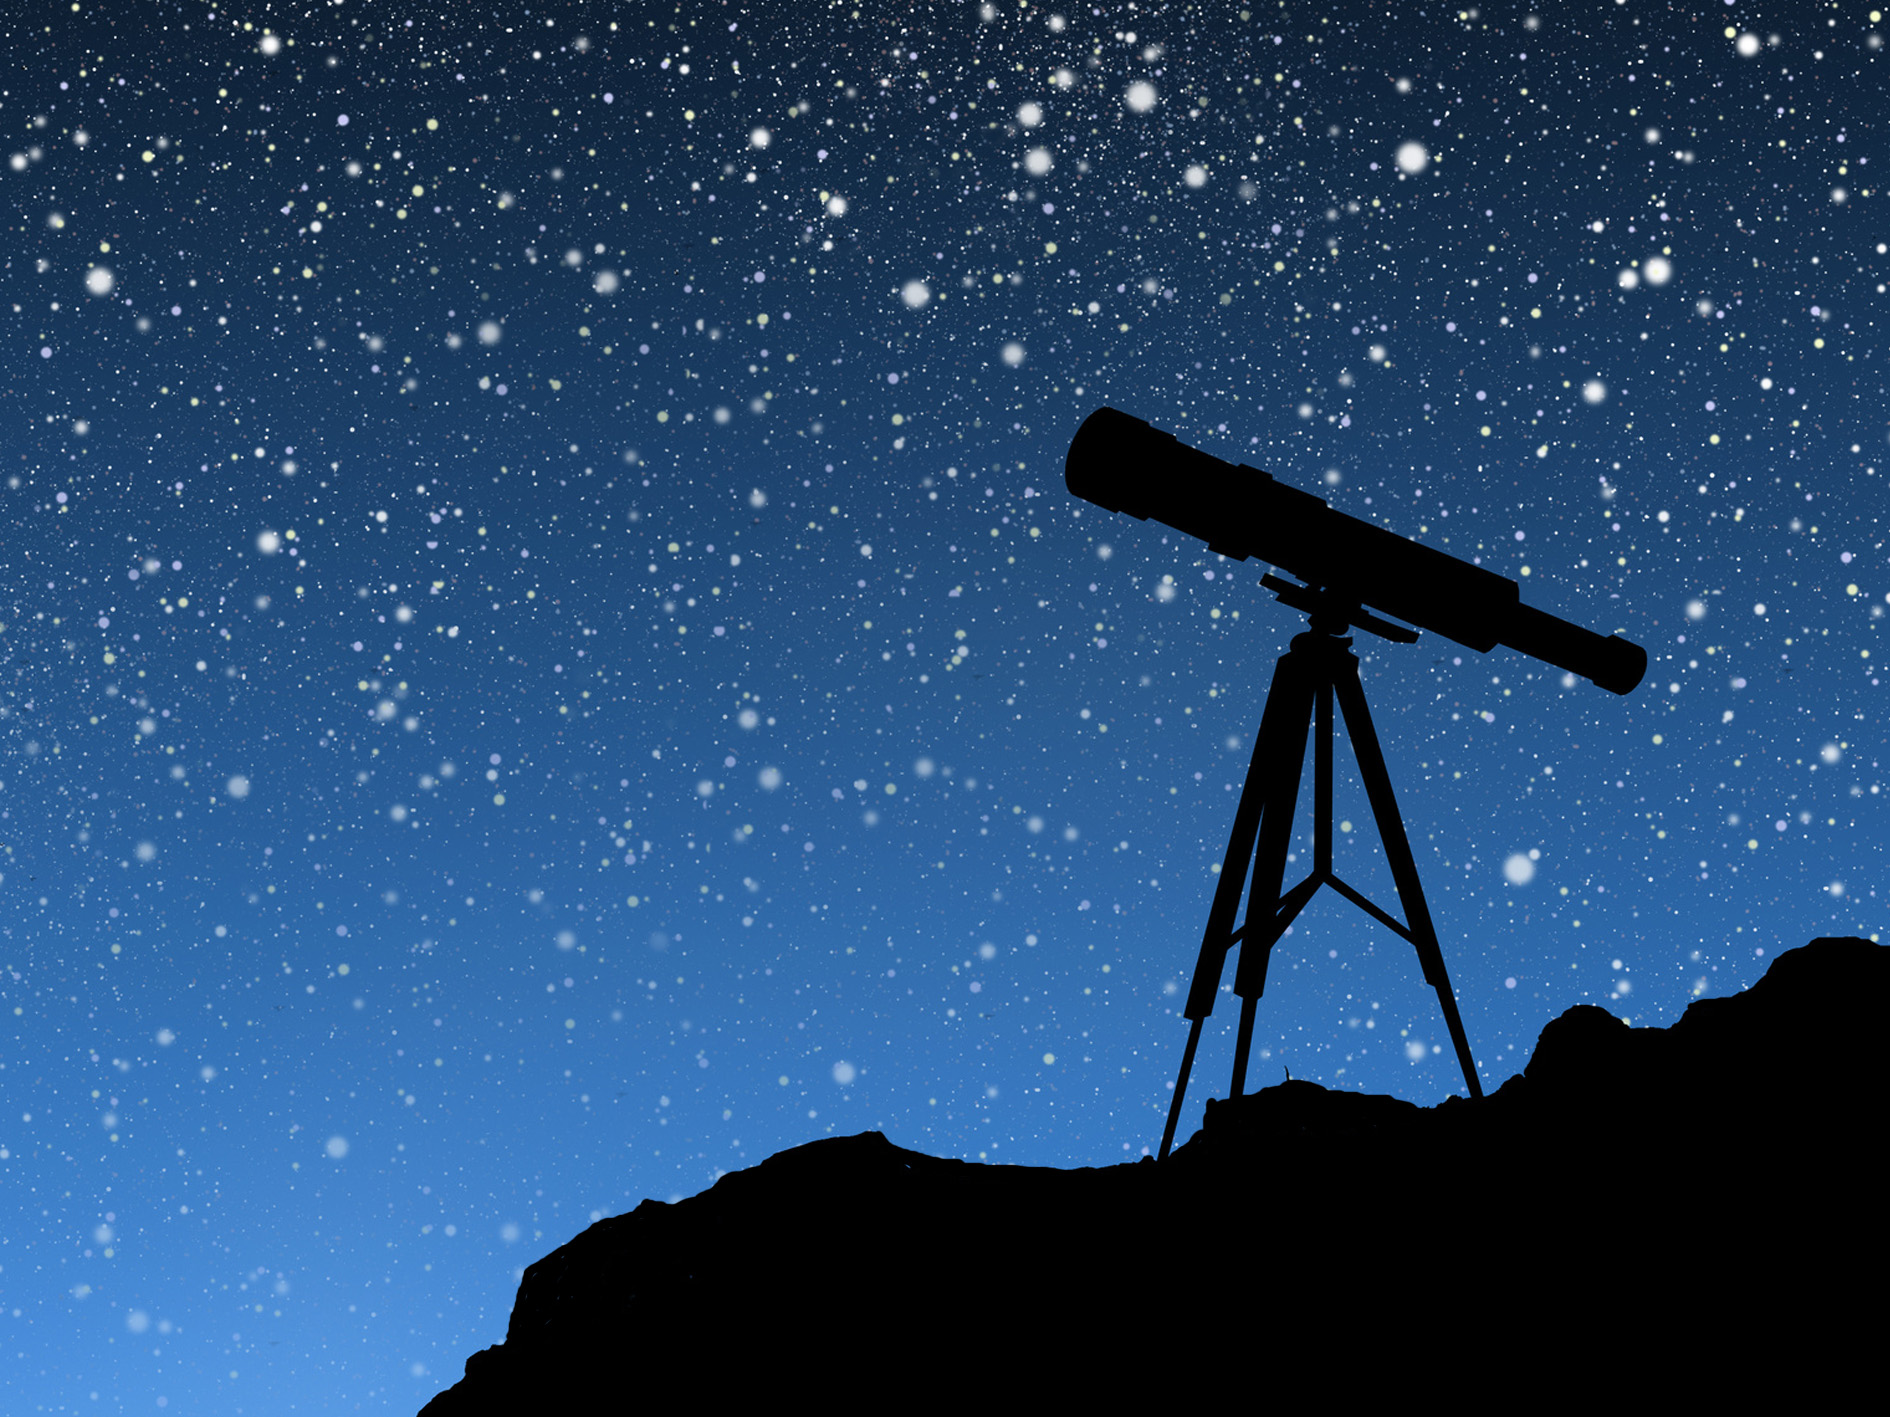 star gazing and astronomy - photo #31